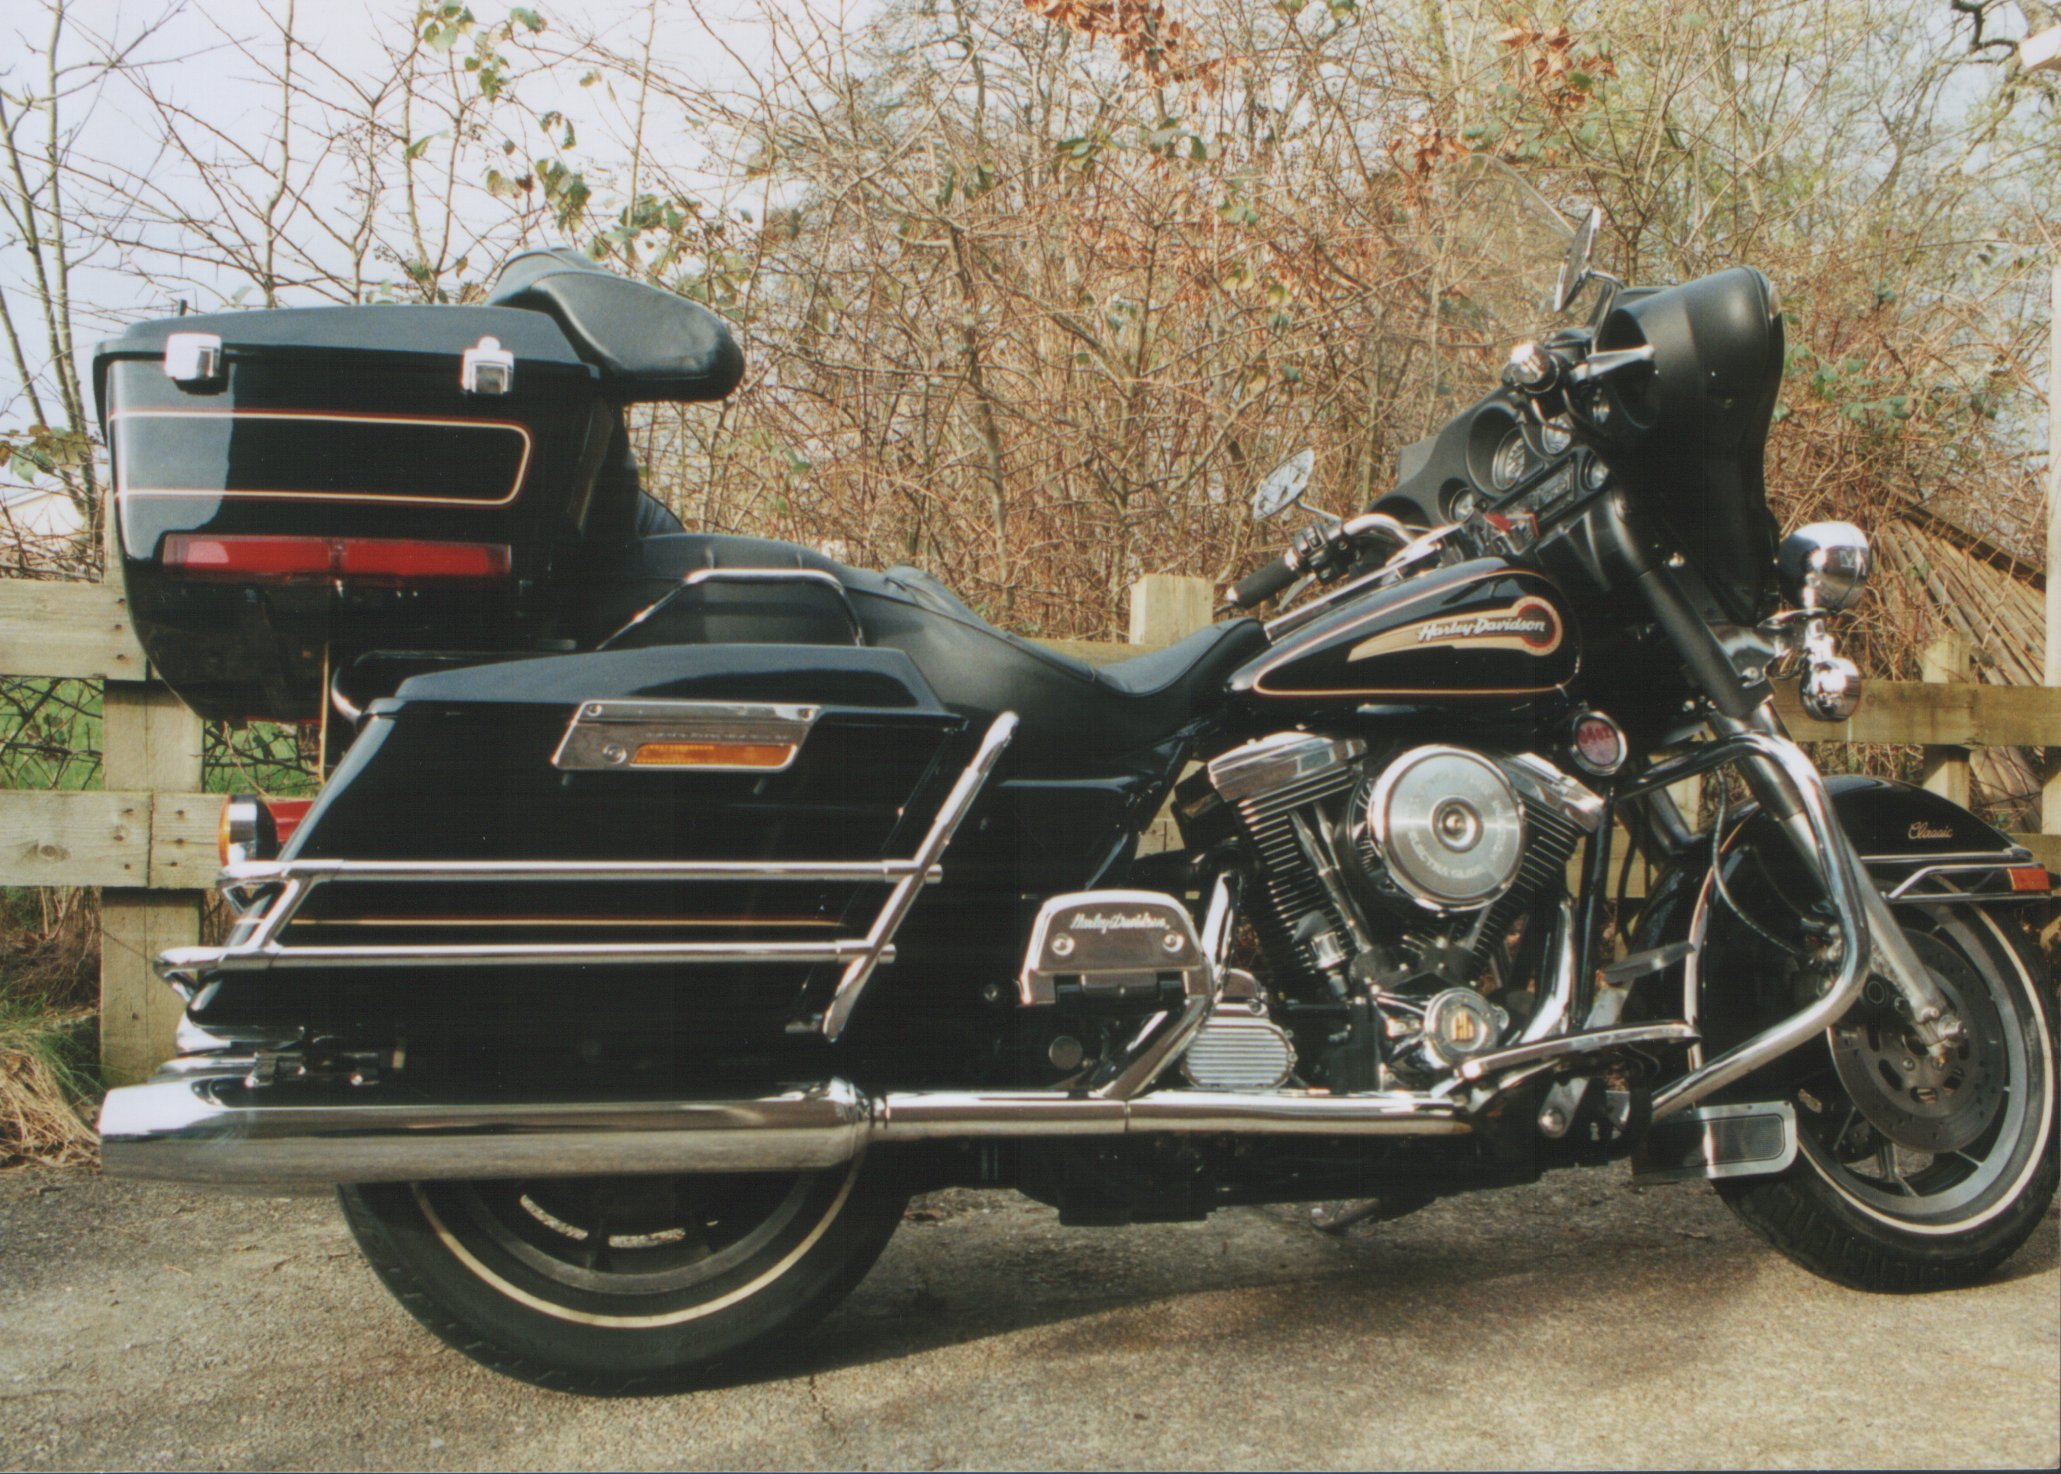 Harley-Davidson FLHTC 1340 Electra Glide Classic images #80591